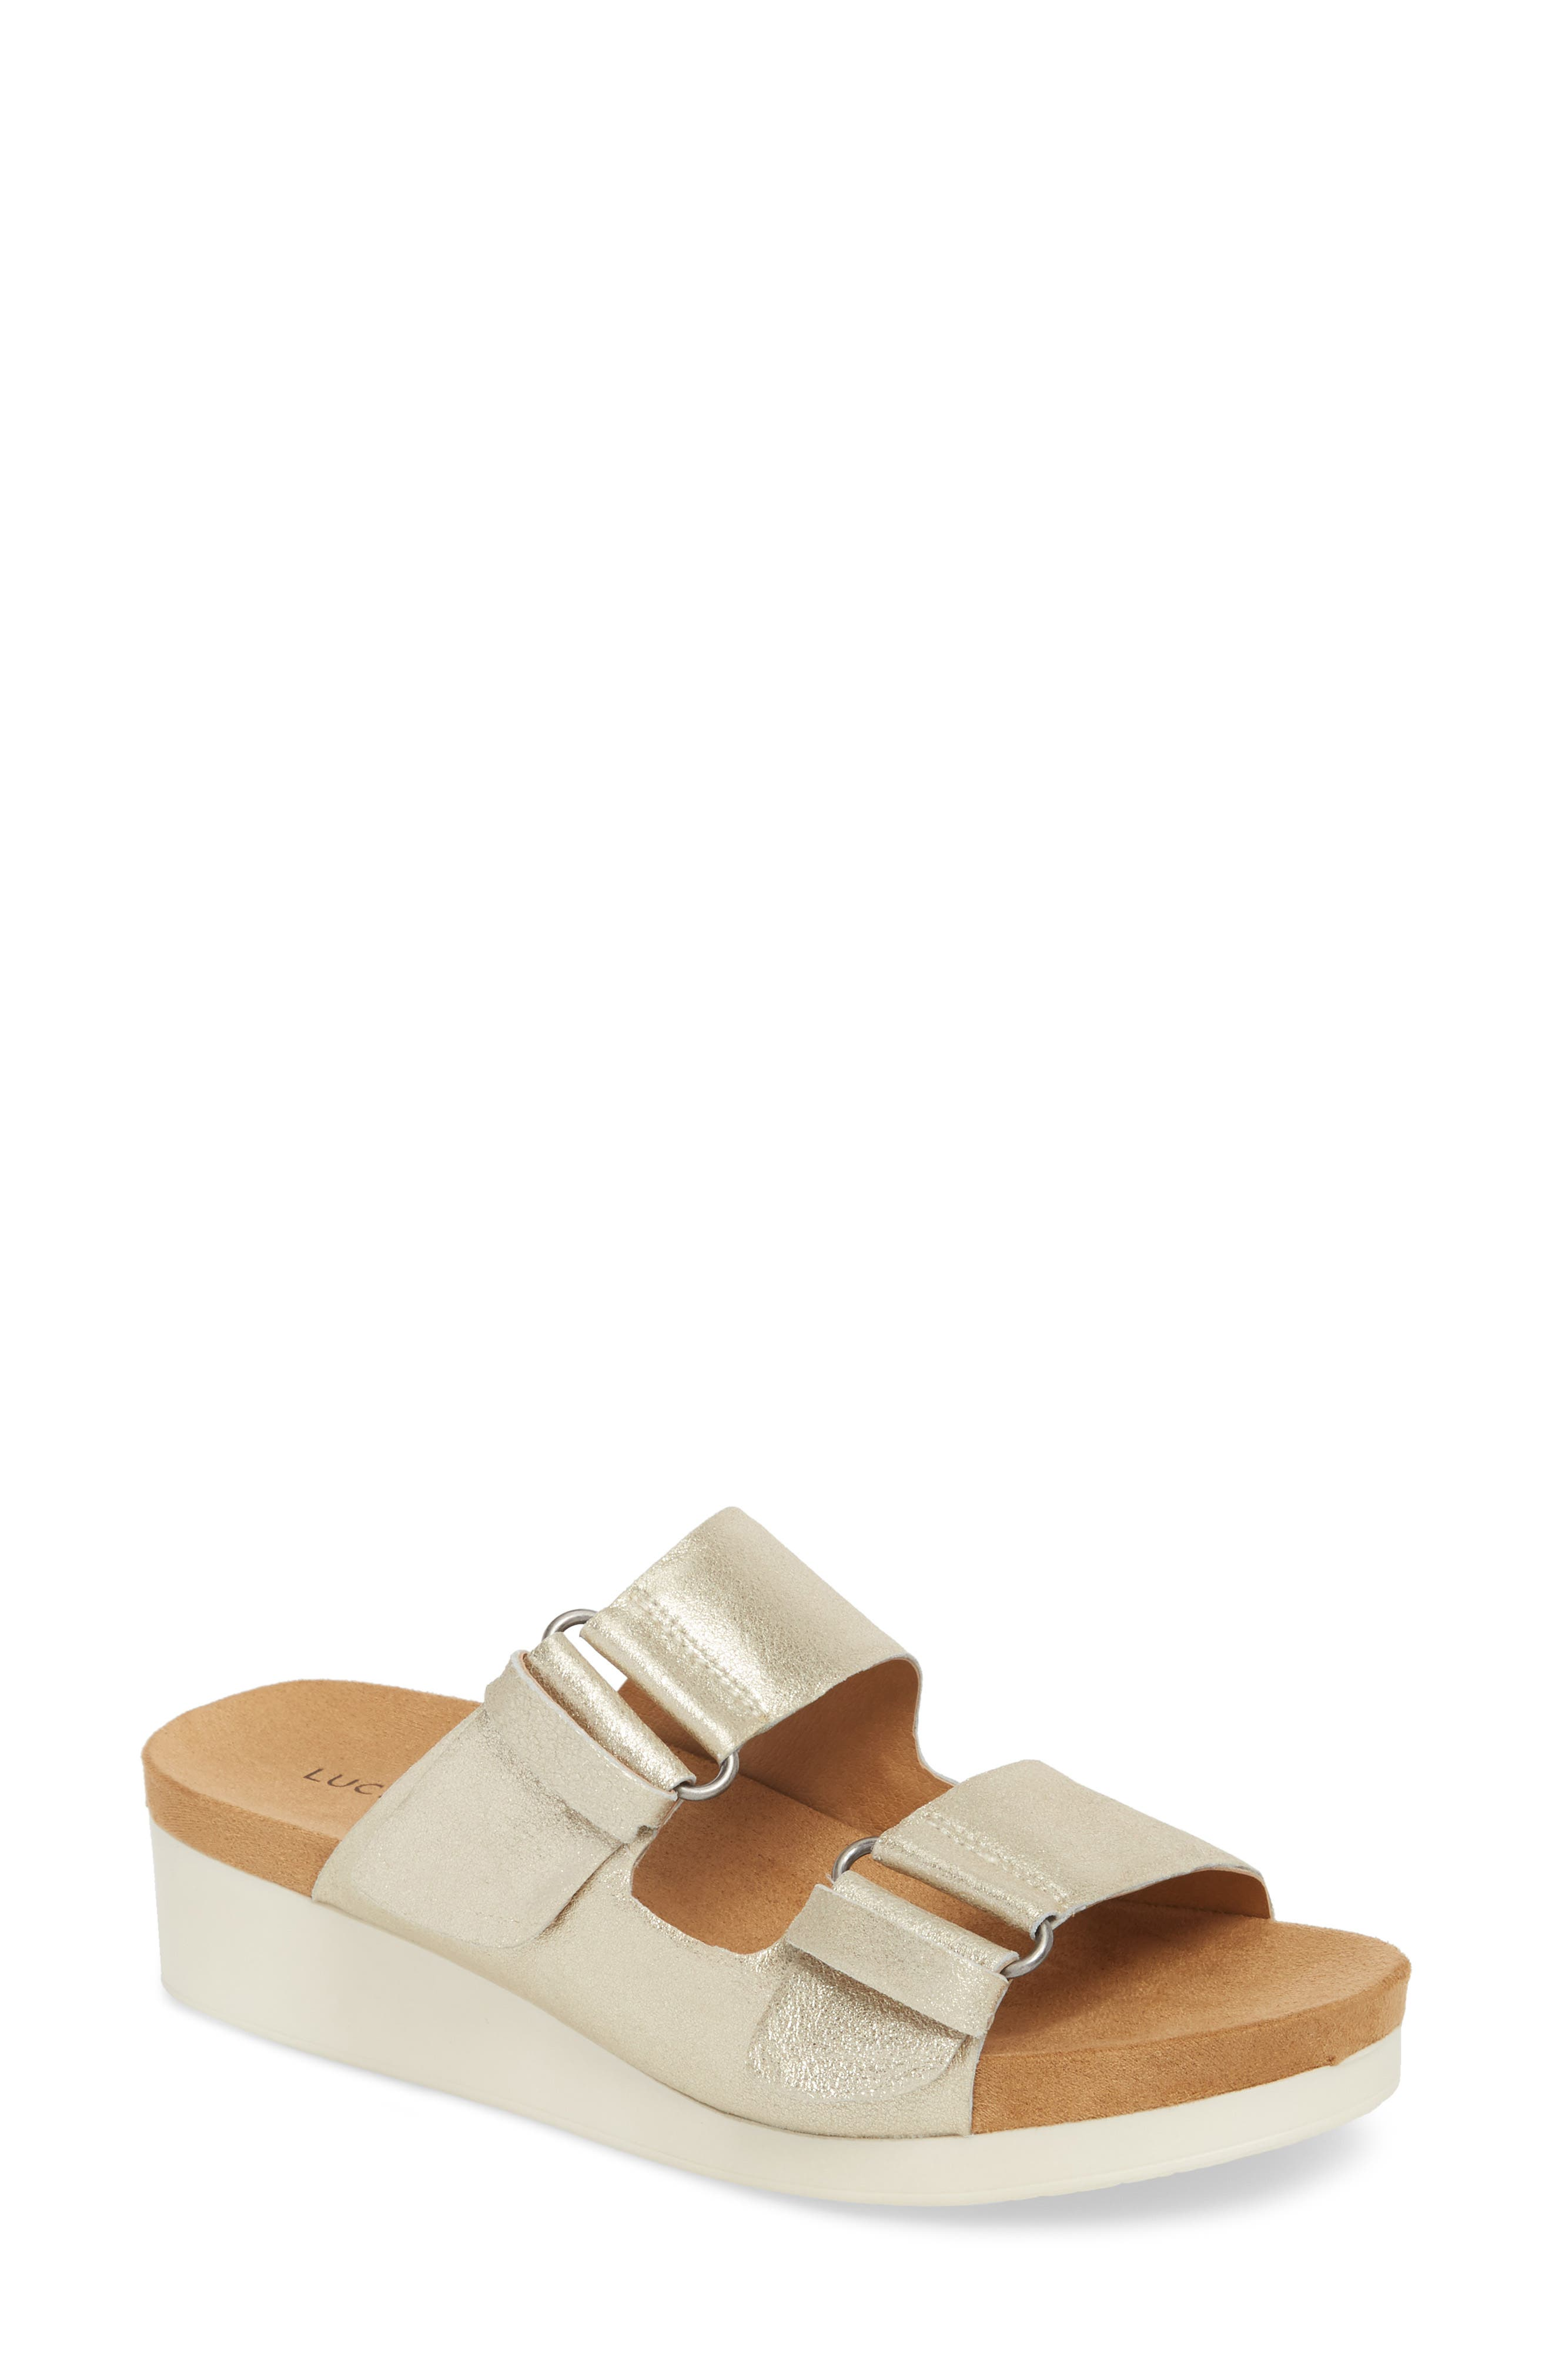 Feniya Sandal,                             Main thumbnail 1, color,                             WASHED GOLD SUEDE